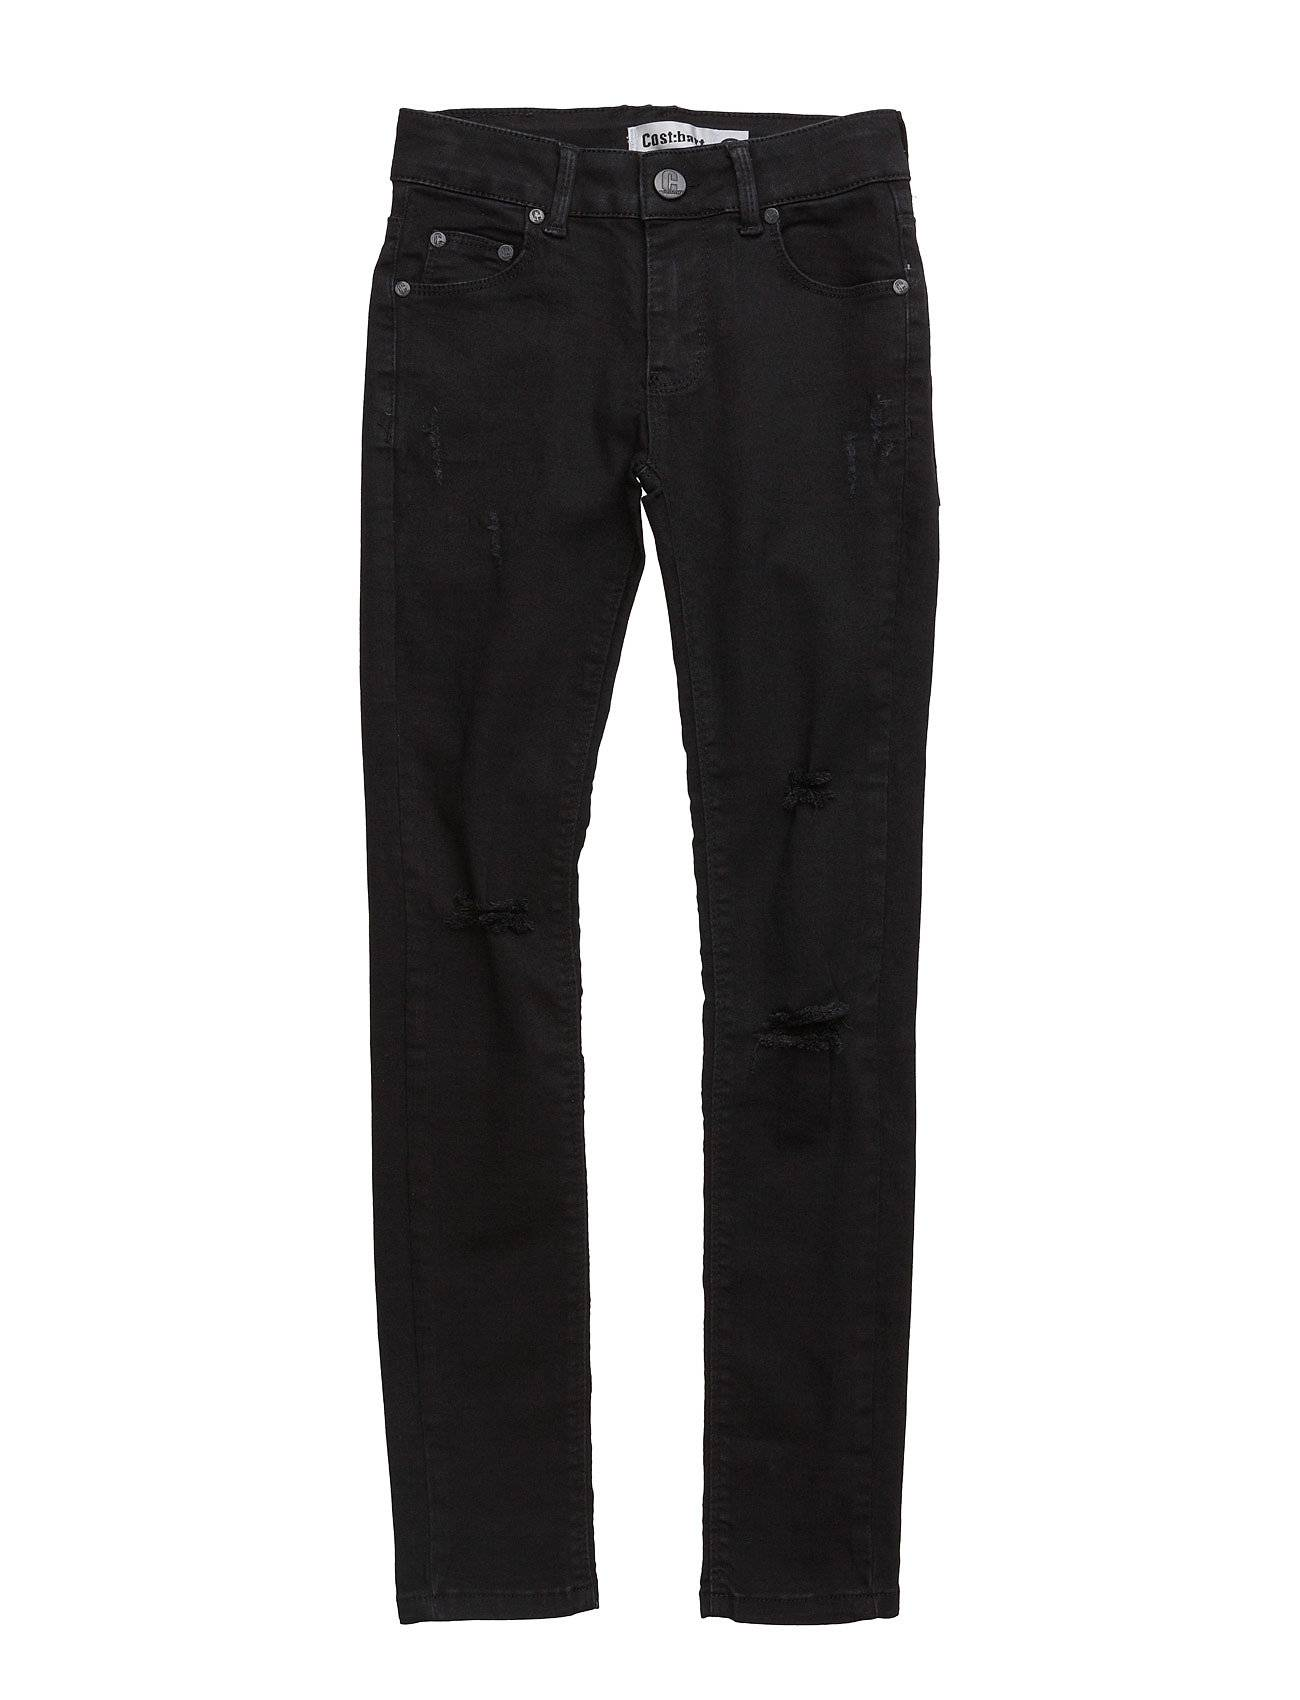 CostBart Bowie Jeans